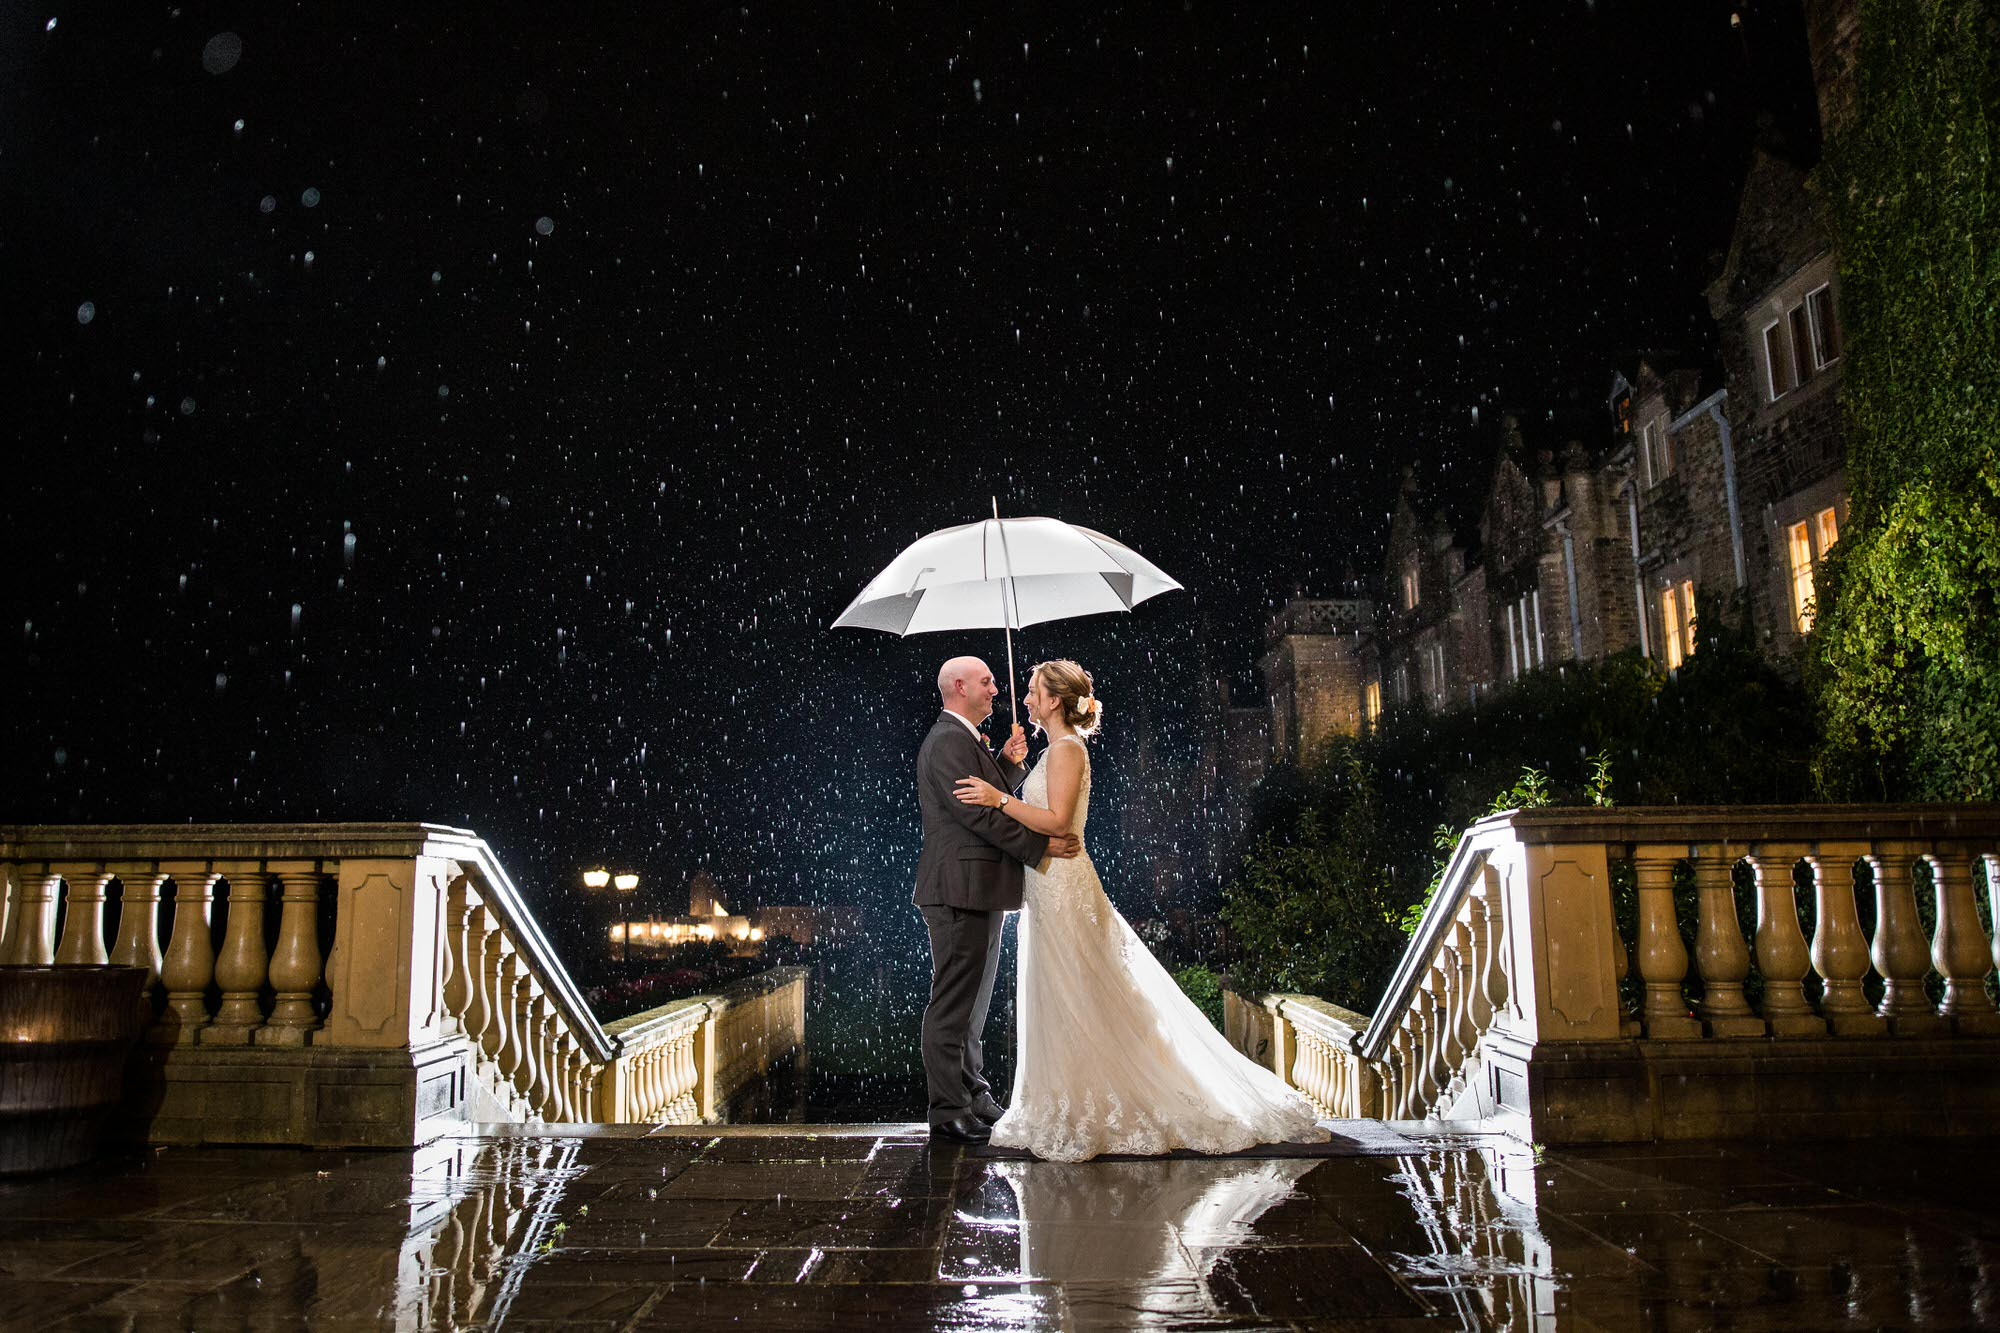 Professional Wedding Photograph in the rain at South Lodge Hotel in Horsham